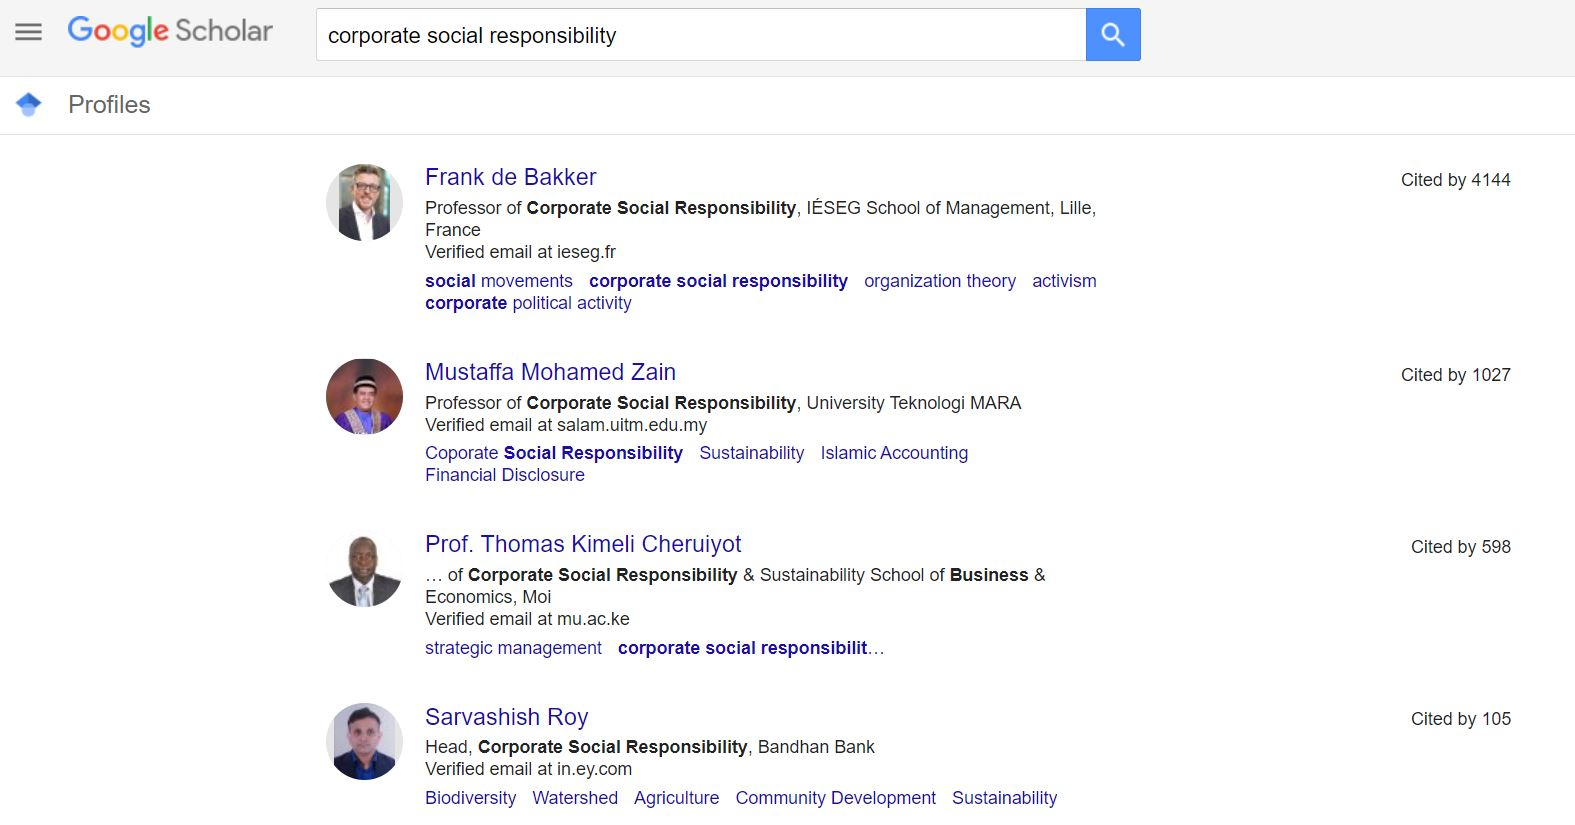 List of authors in Google Scholar's Profiles search